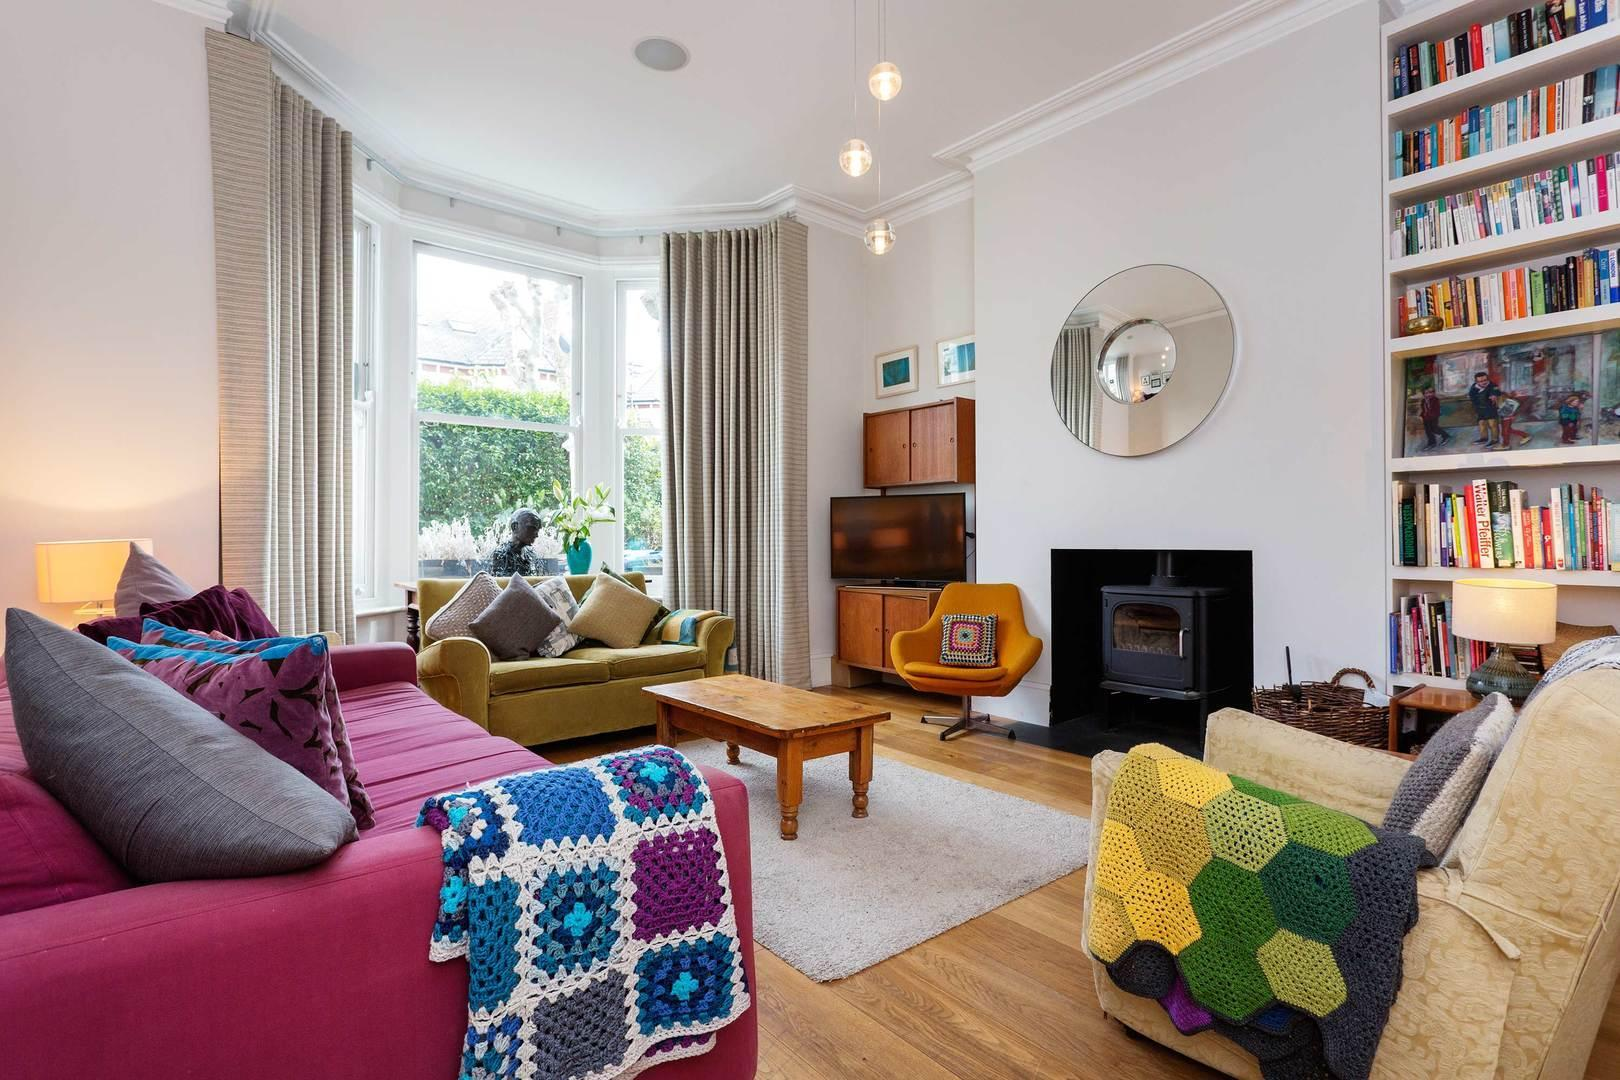 Queen's Park Family House Reviews